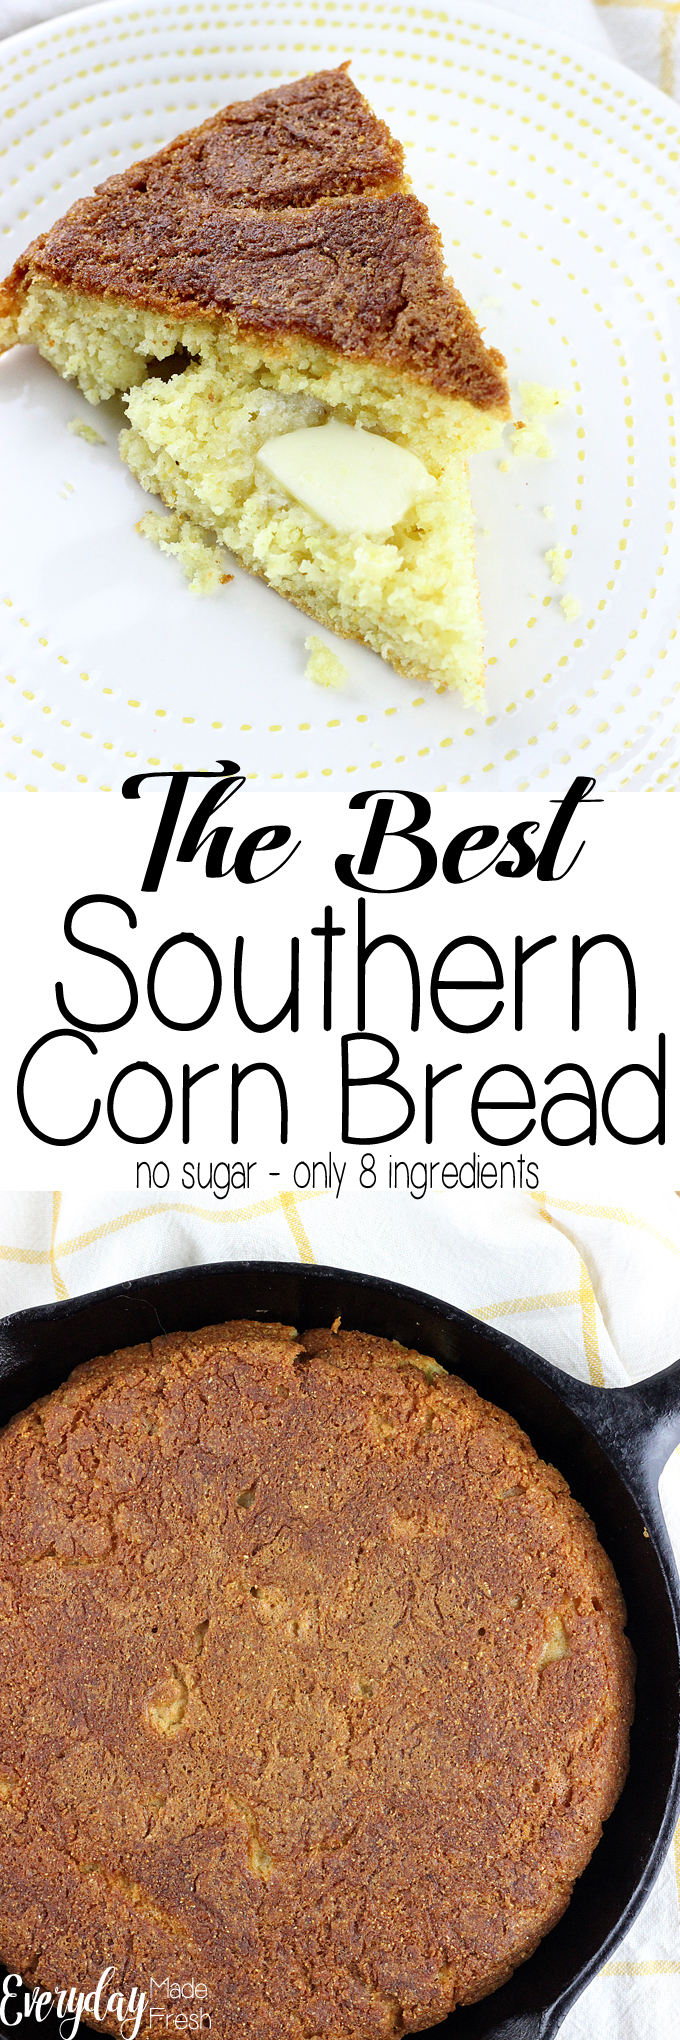 Toss the boxed mix, grab 8 ingredients that you probably already have, and make The Best Southern Corn Bread asap! You won't regret it, and your family will love it. Plus, there is no sugar!